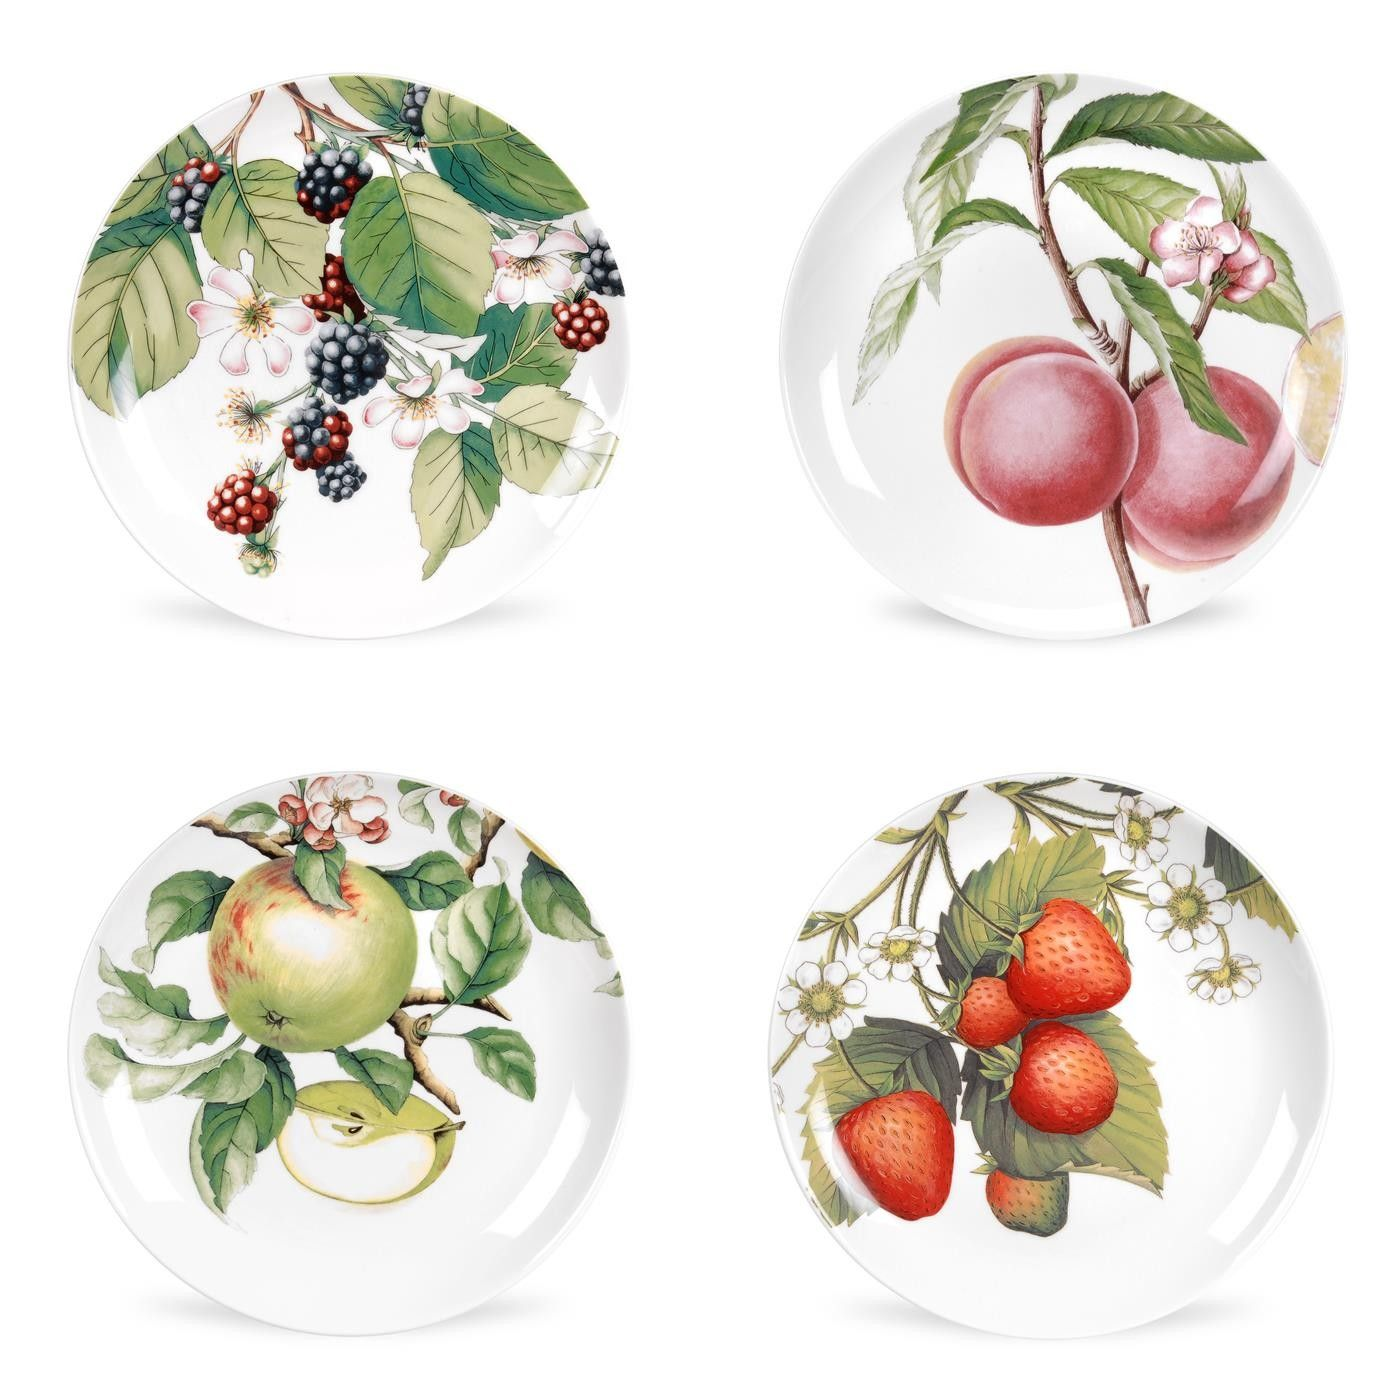 Portmeirion Eden Fruits 27cm Plates Set of 4 - Eden Fruits - Offers - Portmeirion UK  sc 1 st  Pinterest & Portmeirion Eden Fruits 27cm Plates Set of 4 - Eden Fruits - Offers ...